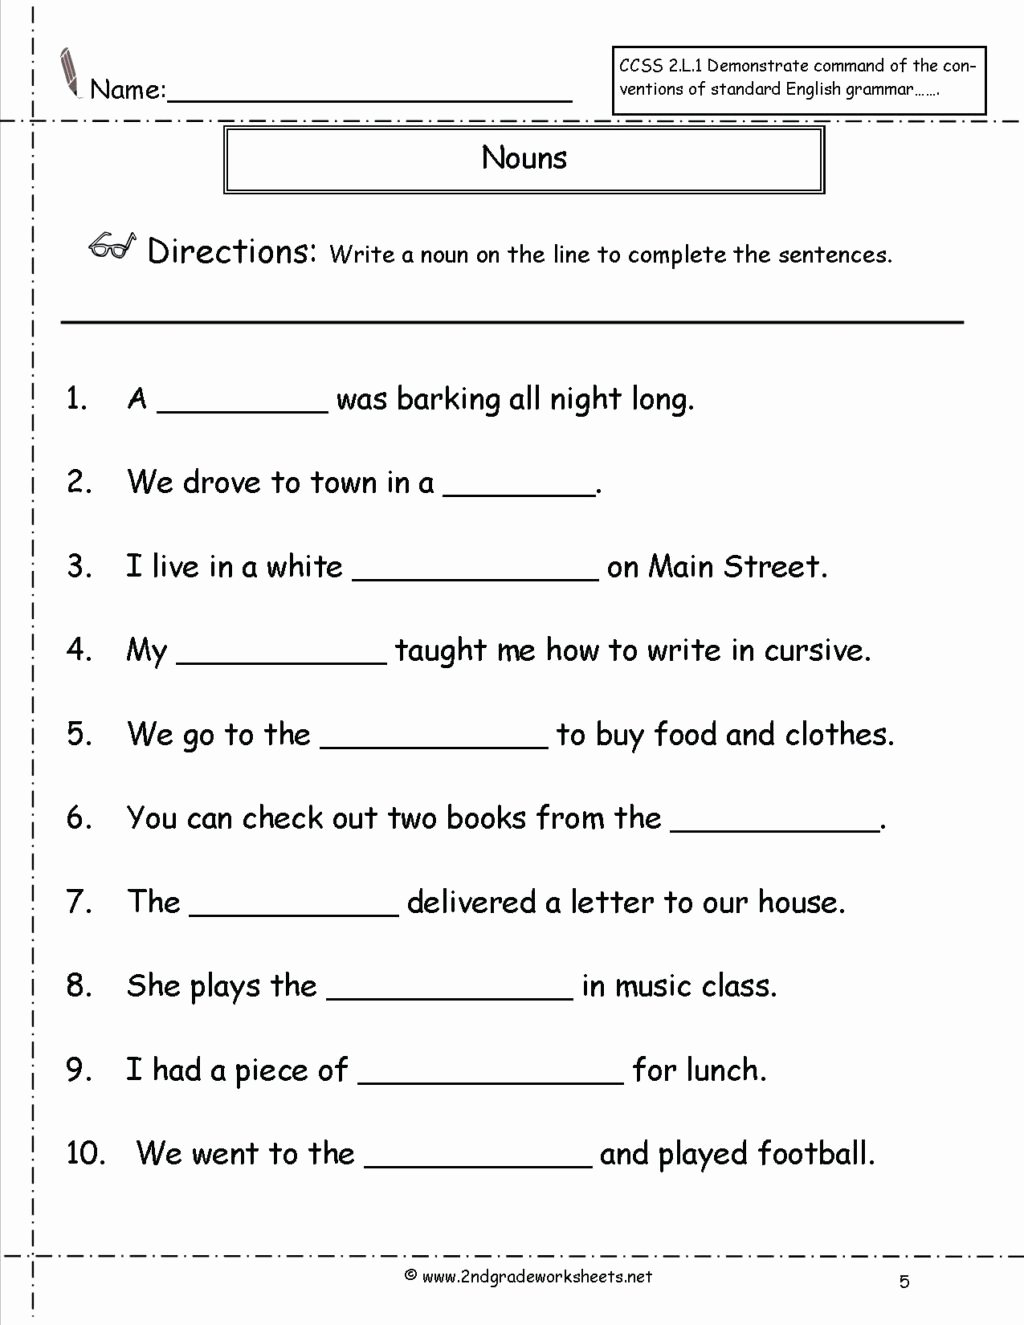 Possessive Pronouns Worksheet 2nd Grade Lovely Worksheet Free Printable Second Grade Reading